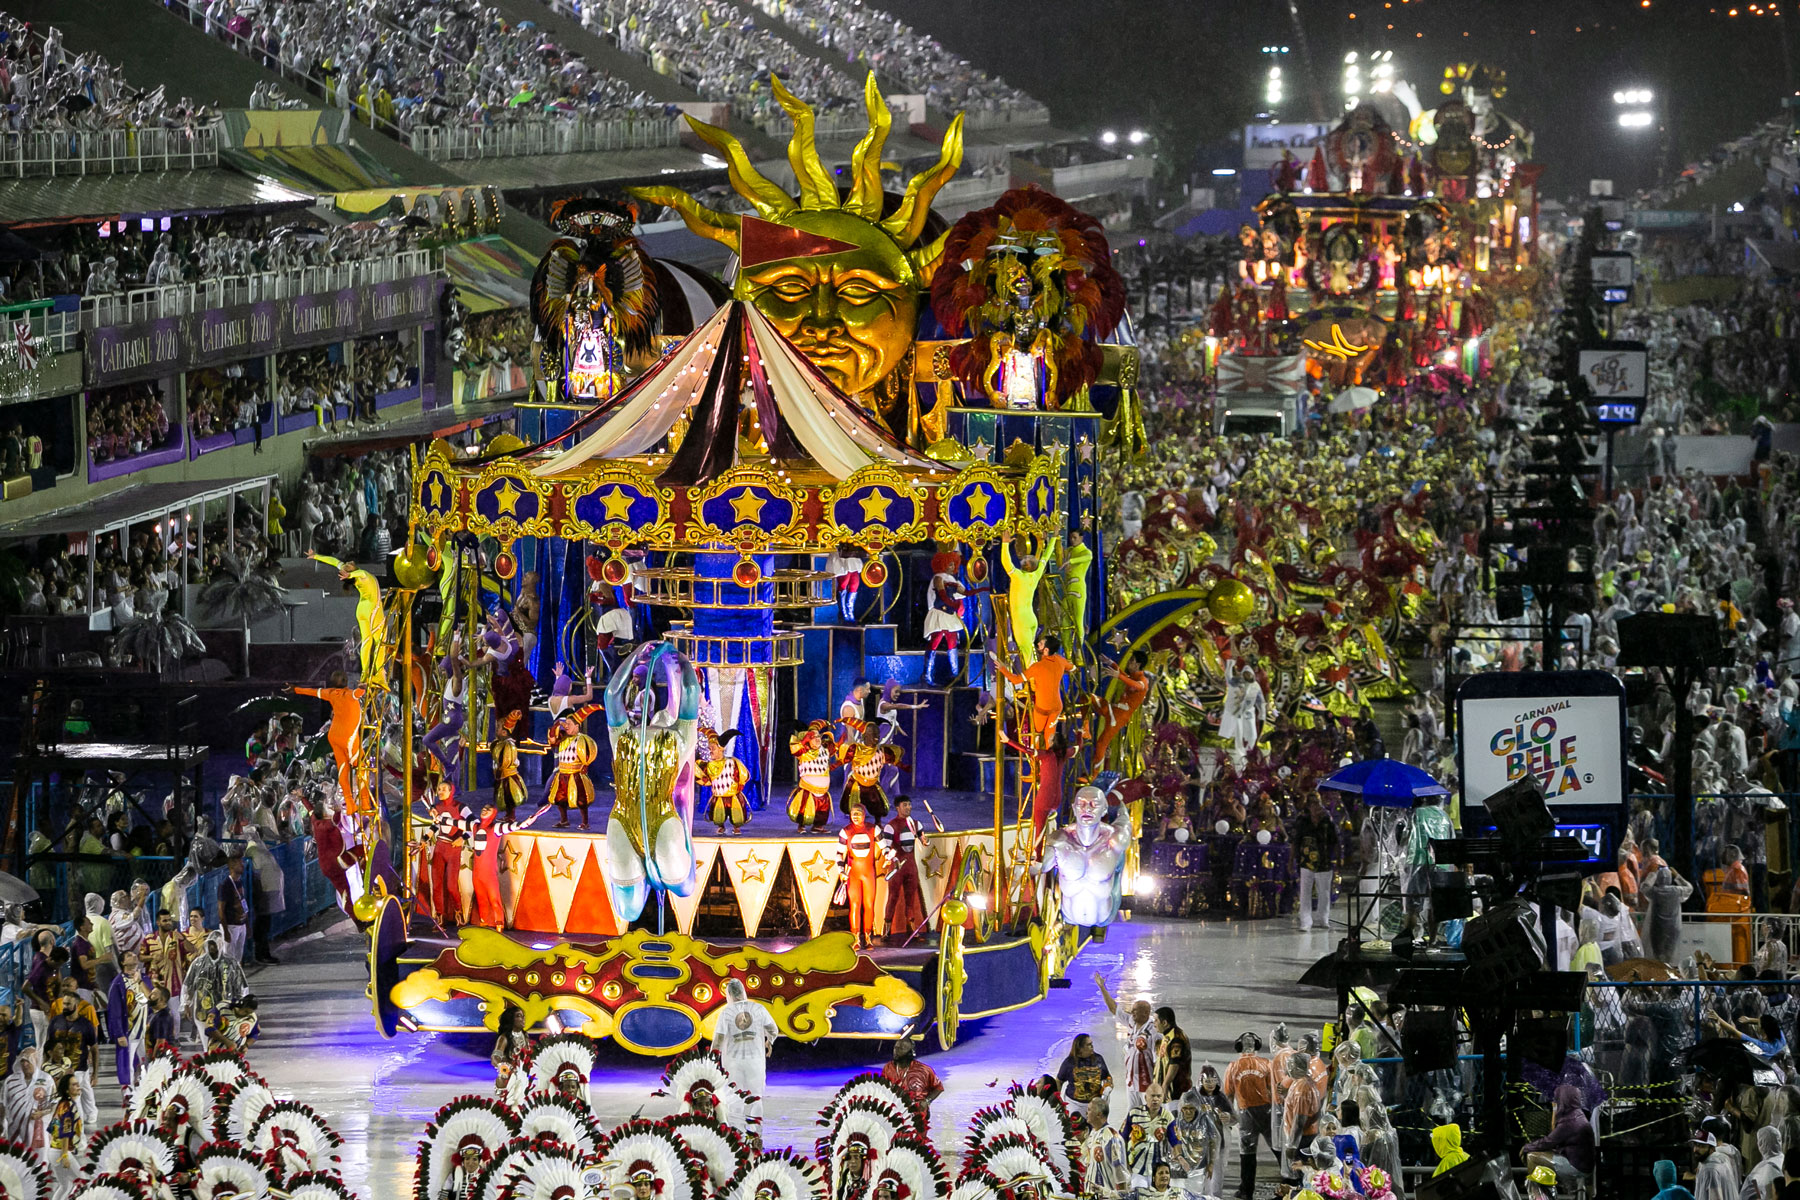 view of Academicos do Salgueiro Samba School performance during the 2020 Rio de Janeiro Carnival champions' parade